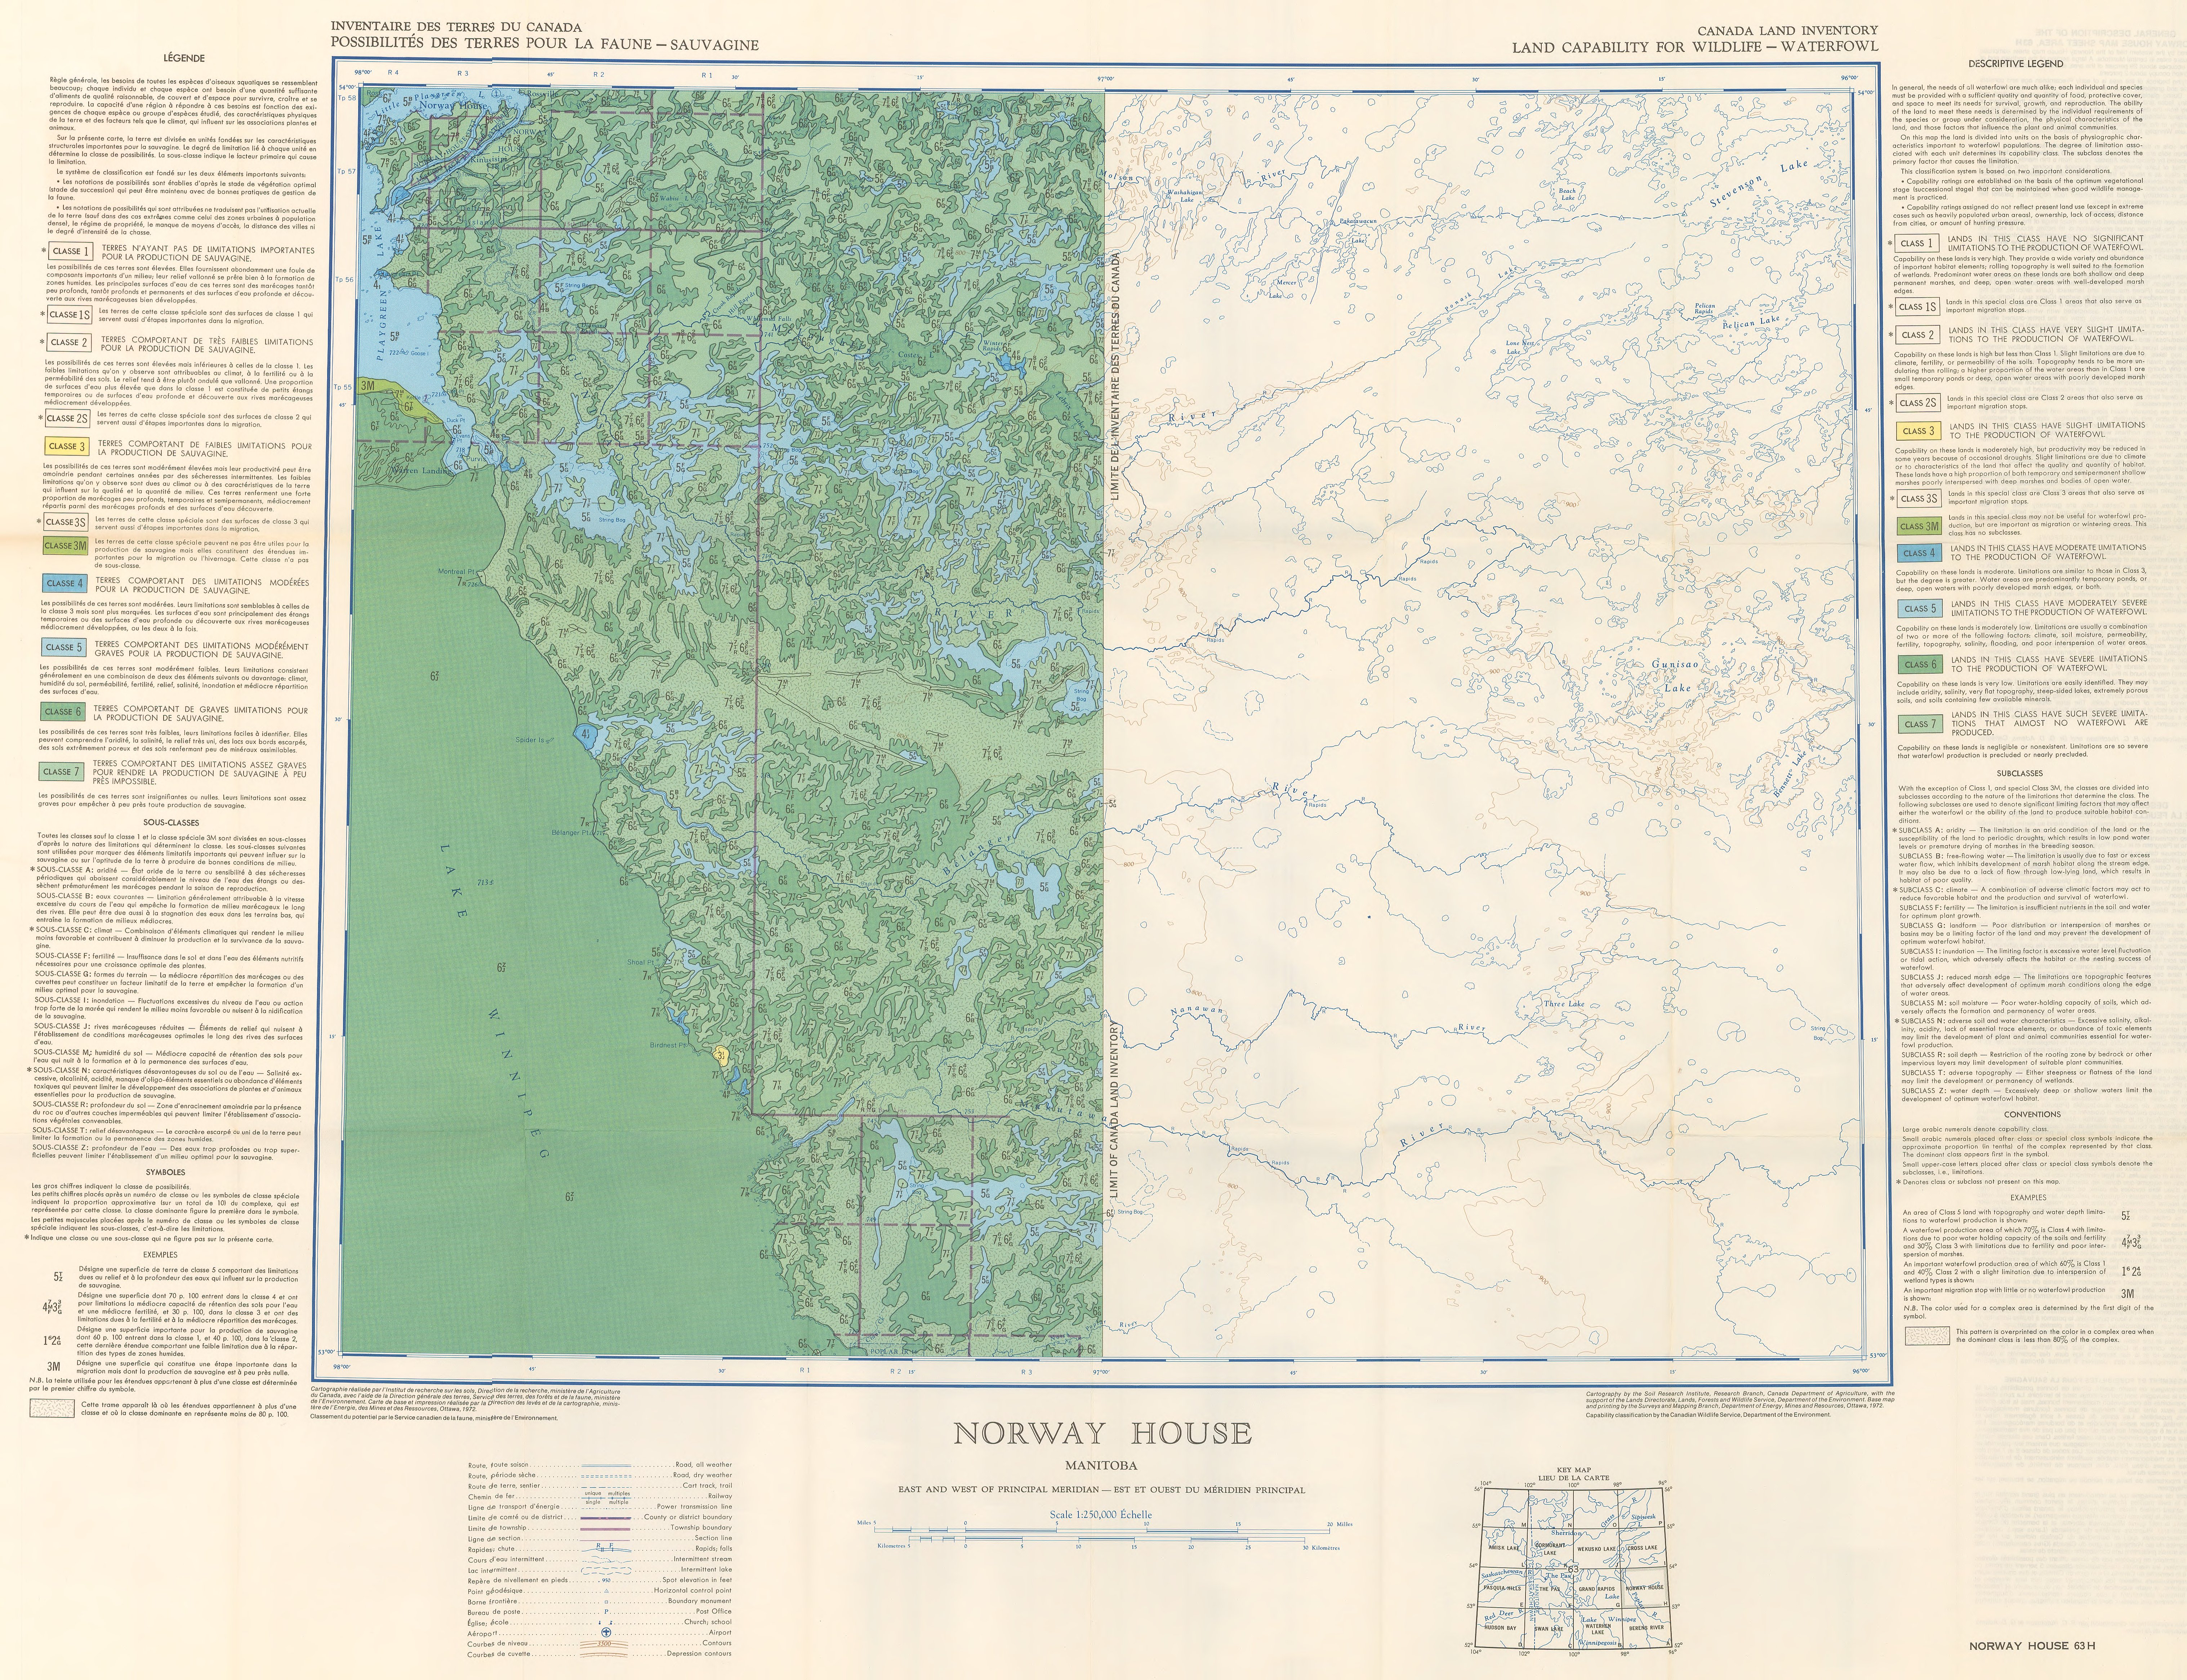 Land Capability For Wildlife Waterfowl - Norway house map